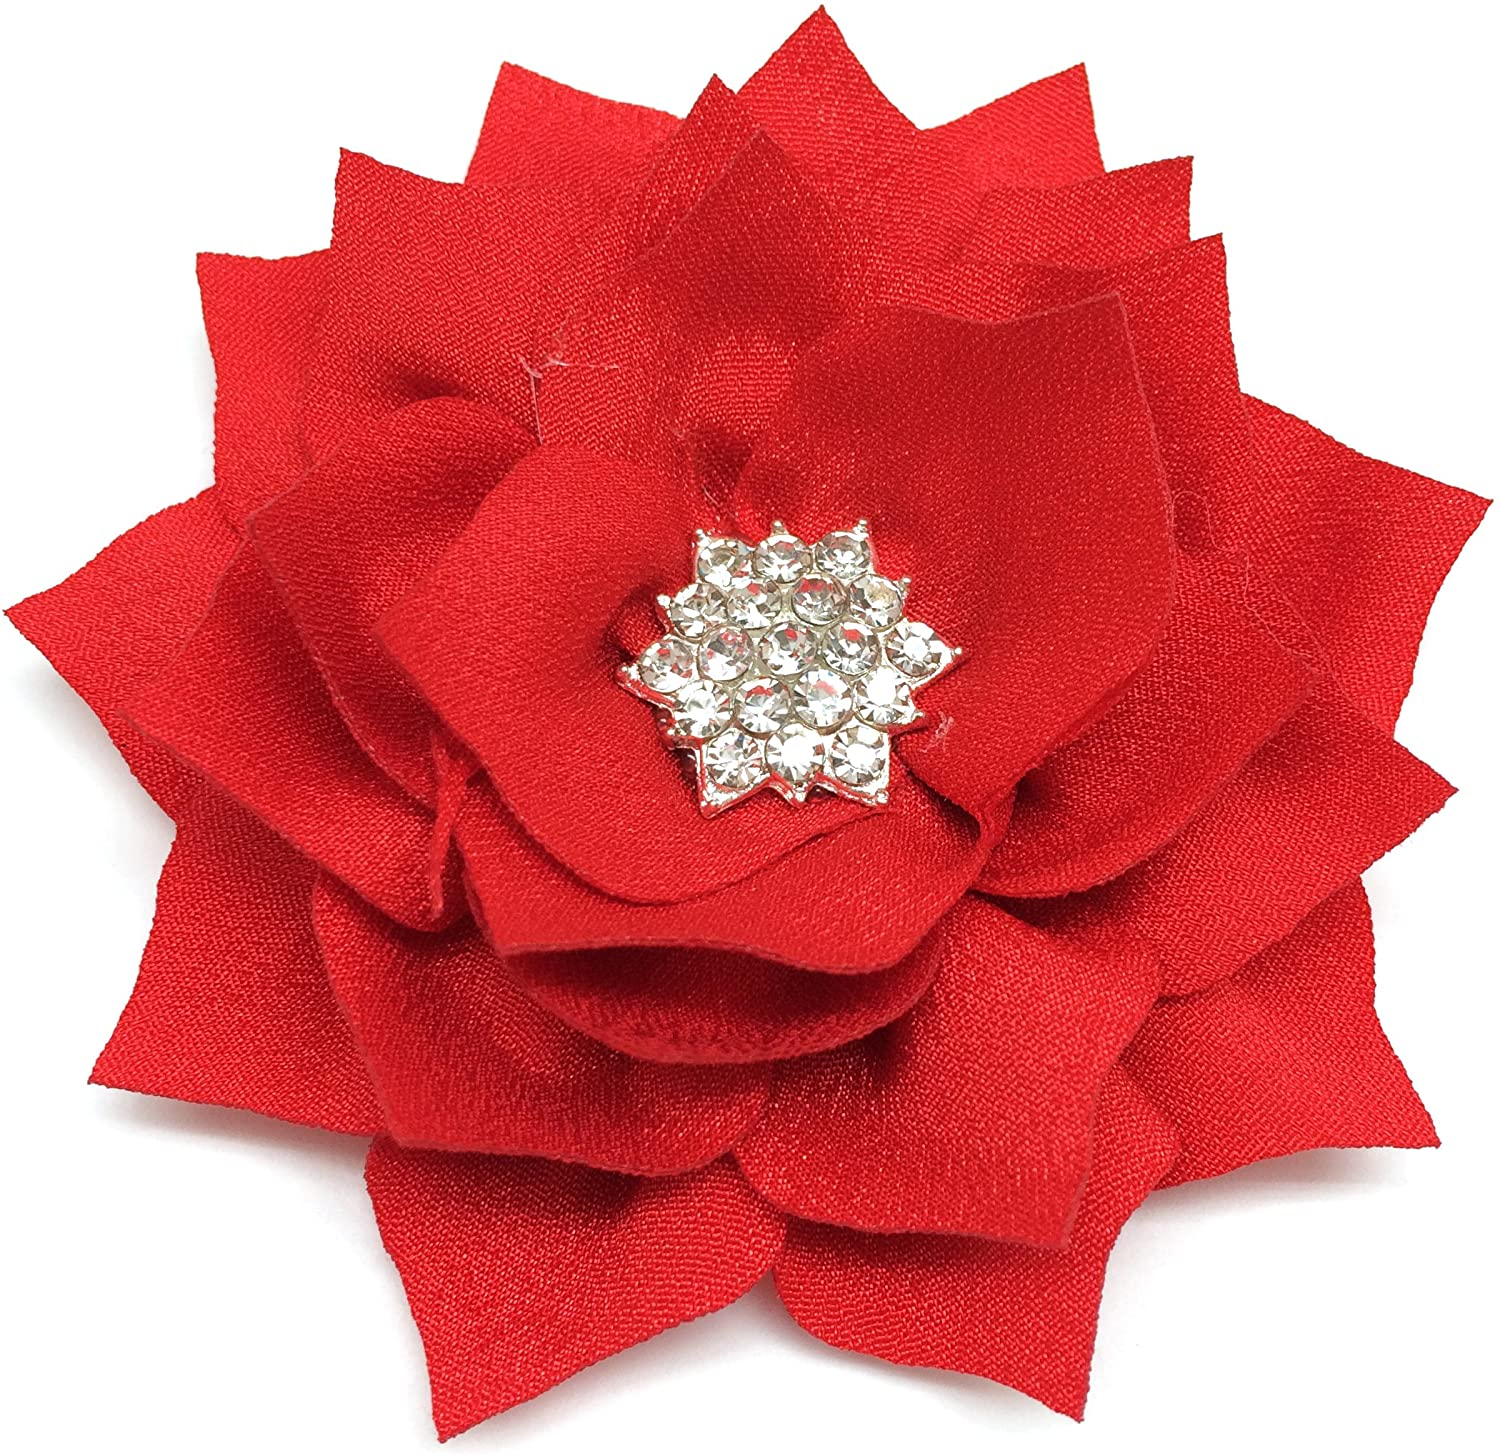 PEPPERLONELY 10PC Set Red Flat Back Rhinestone Button Center Fabric Flowers, 3 Inch